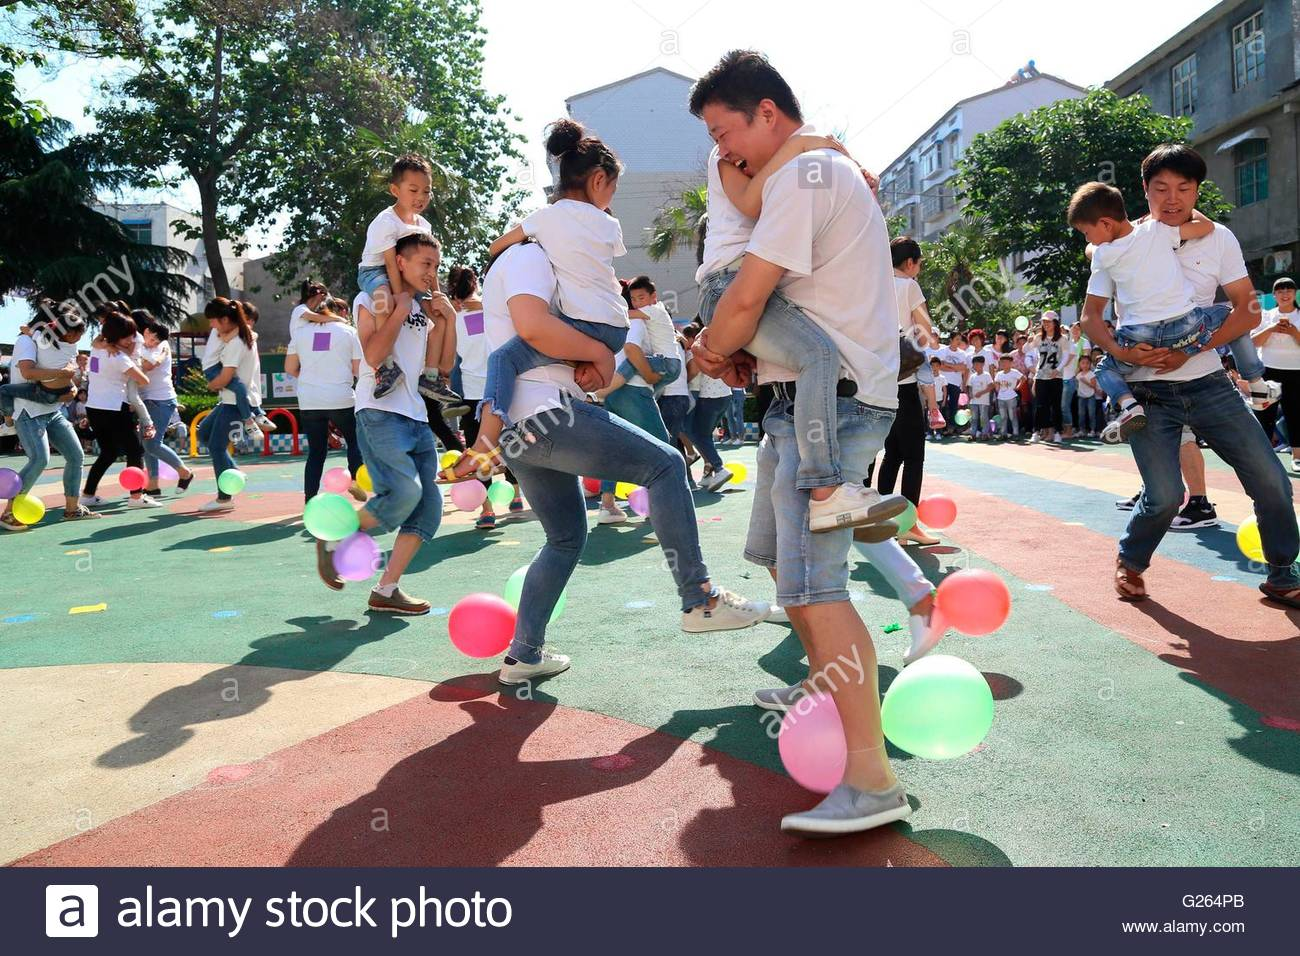 50 Field Day Ideas, Games and Activities